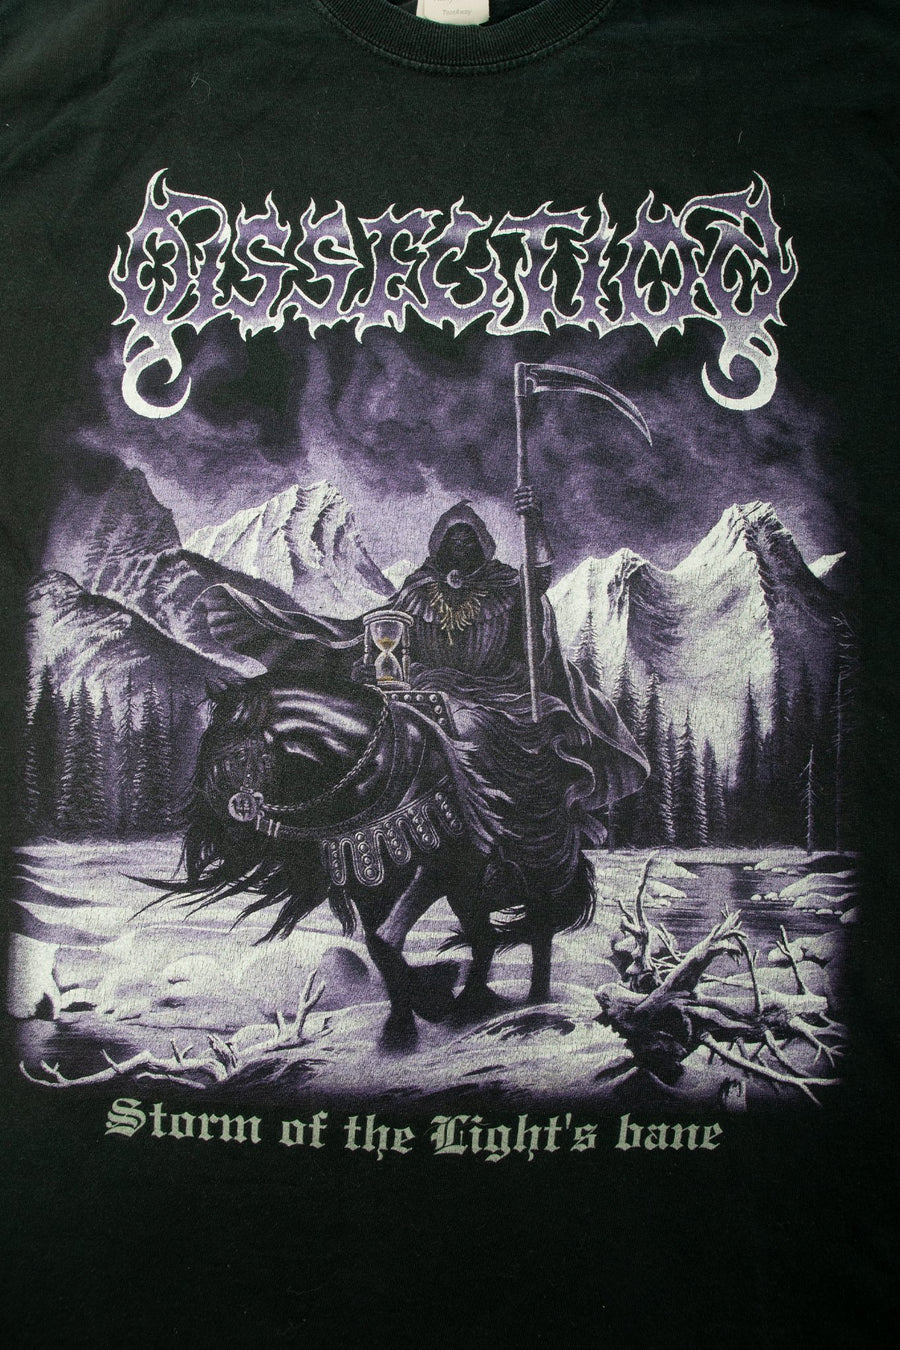 Tee Dissection Storm of the light's bane - WASTED PARIS